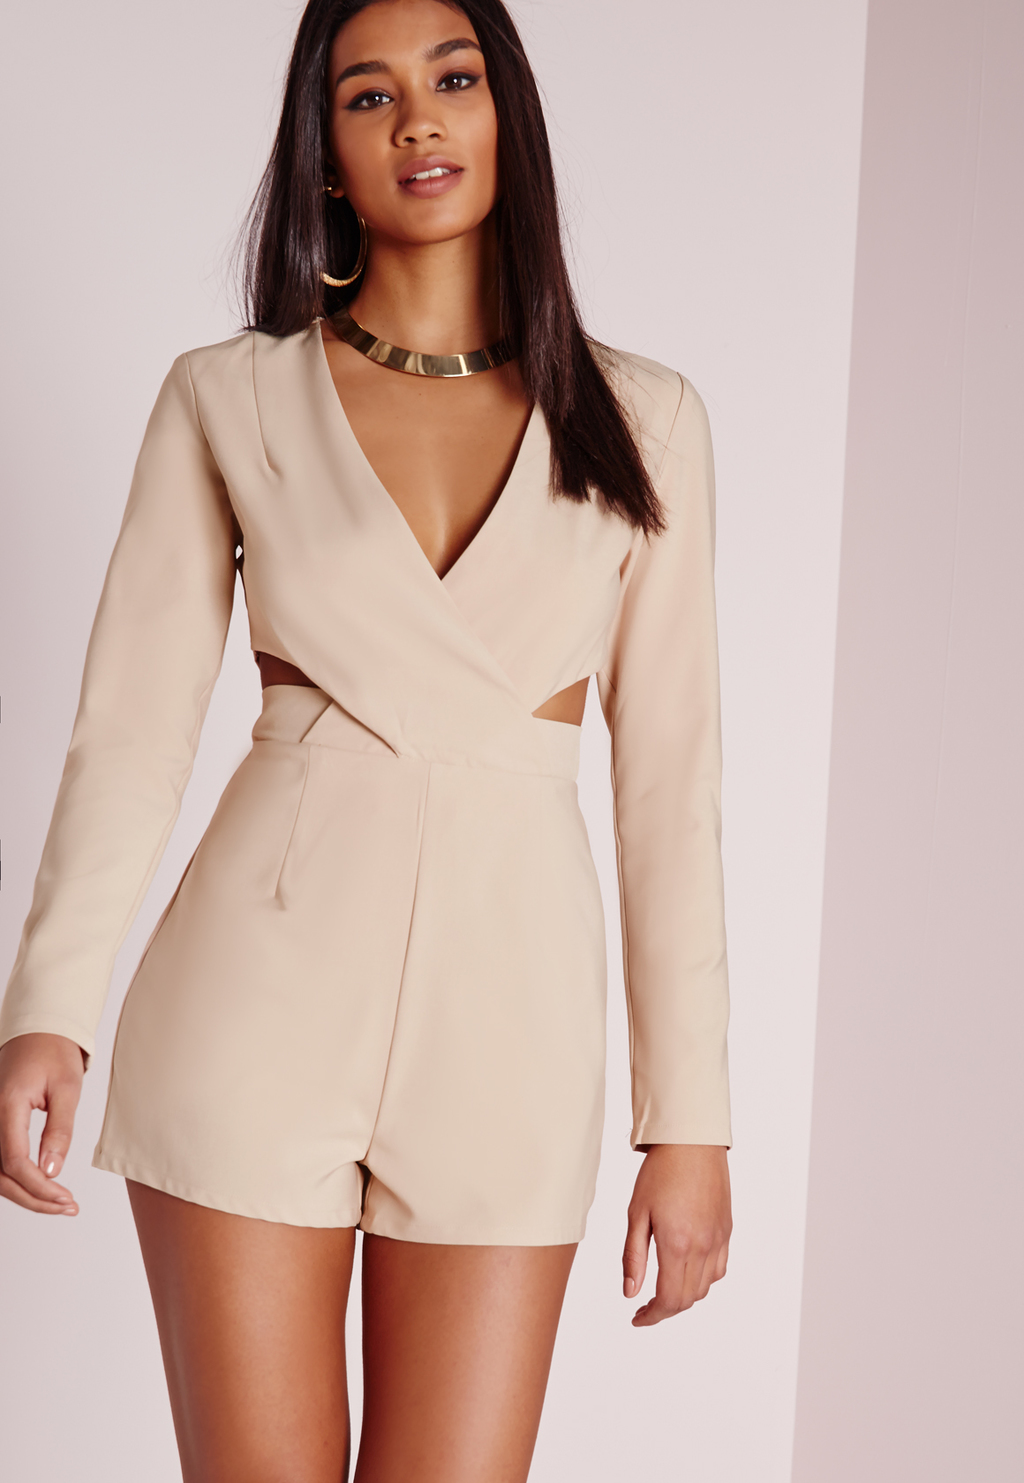 Cut Out Waist Wrap Playsuit Stone, Grey - neckline: low v-neck; pattern: plain; length: short shorts; predominant colour: nude; occasions: evening; fit: body skimming; fibres: polyester/polyamide - stretch; waist detail: cut out detail; sleeve length: long sleeve; sleeve style: standard; style: playsuit; pattern type: fabric; texture group: woven light midweight; season: s/s 2016